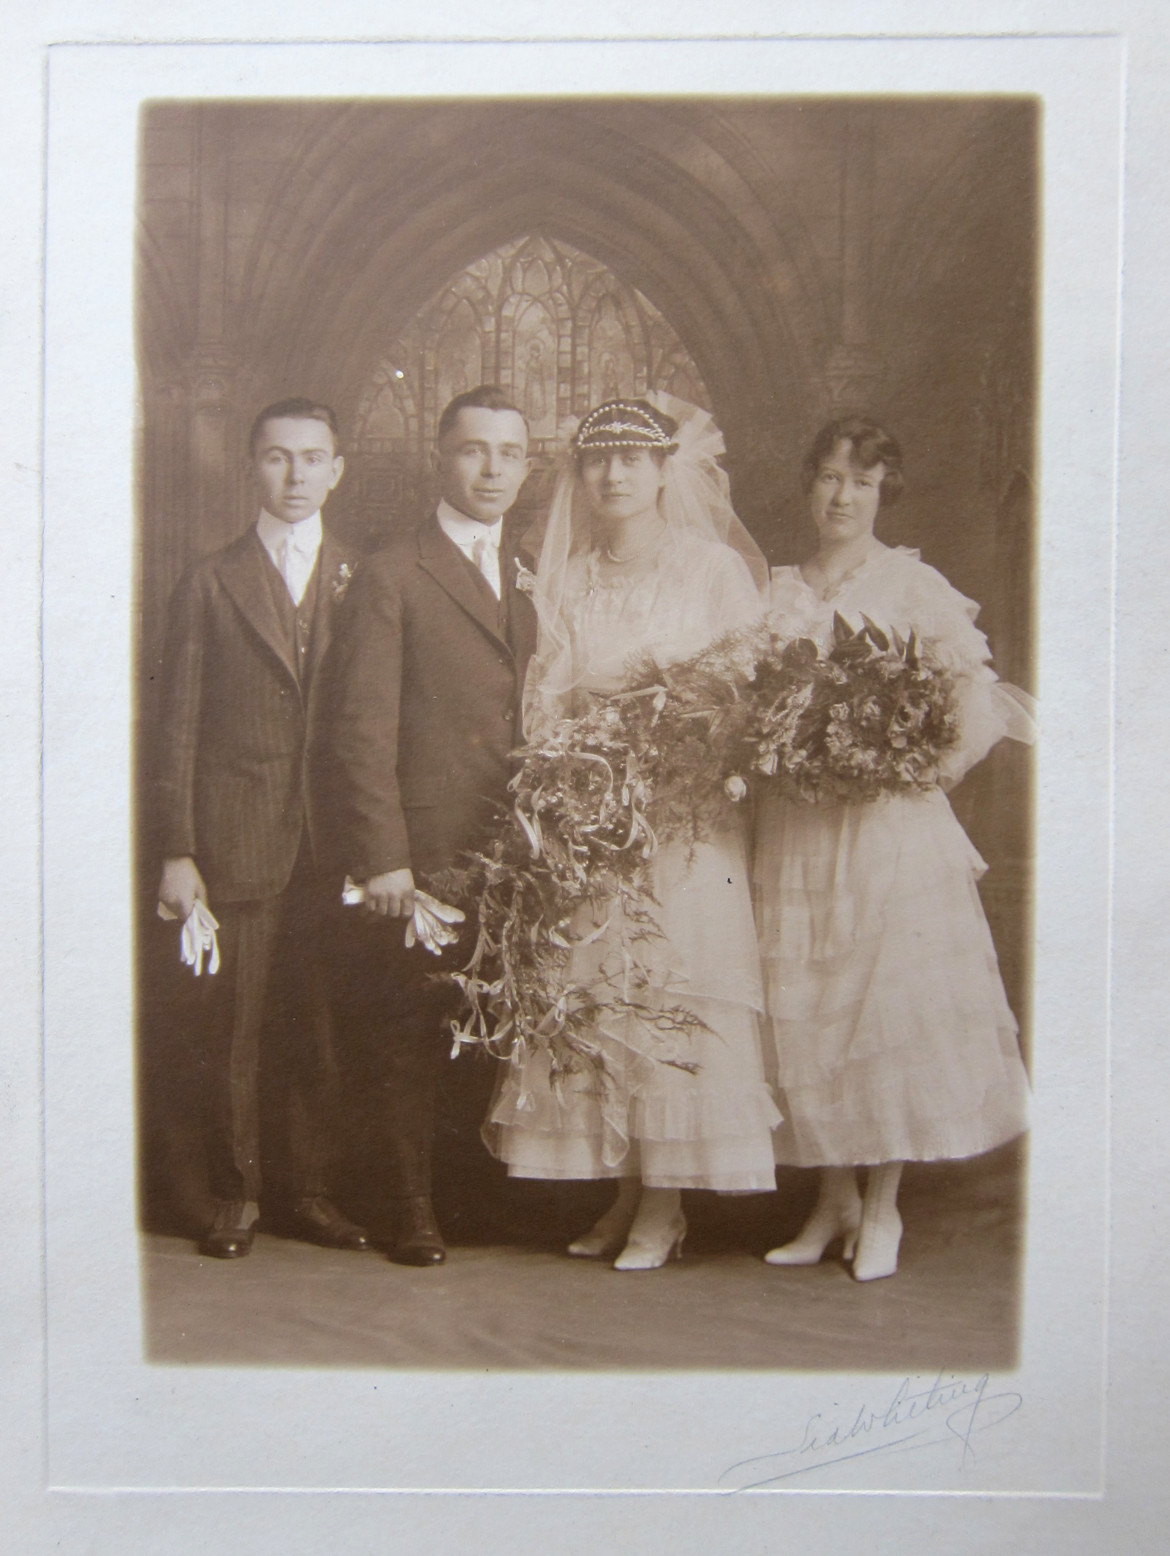 This is the wedding photo of Matt's great grandparents, Talitha Wuellner and Max Slavik.  They may have been the first owners of the home at 2855 Laclede Station Road.